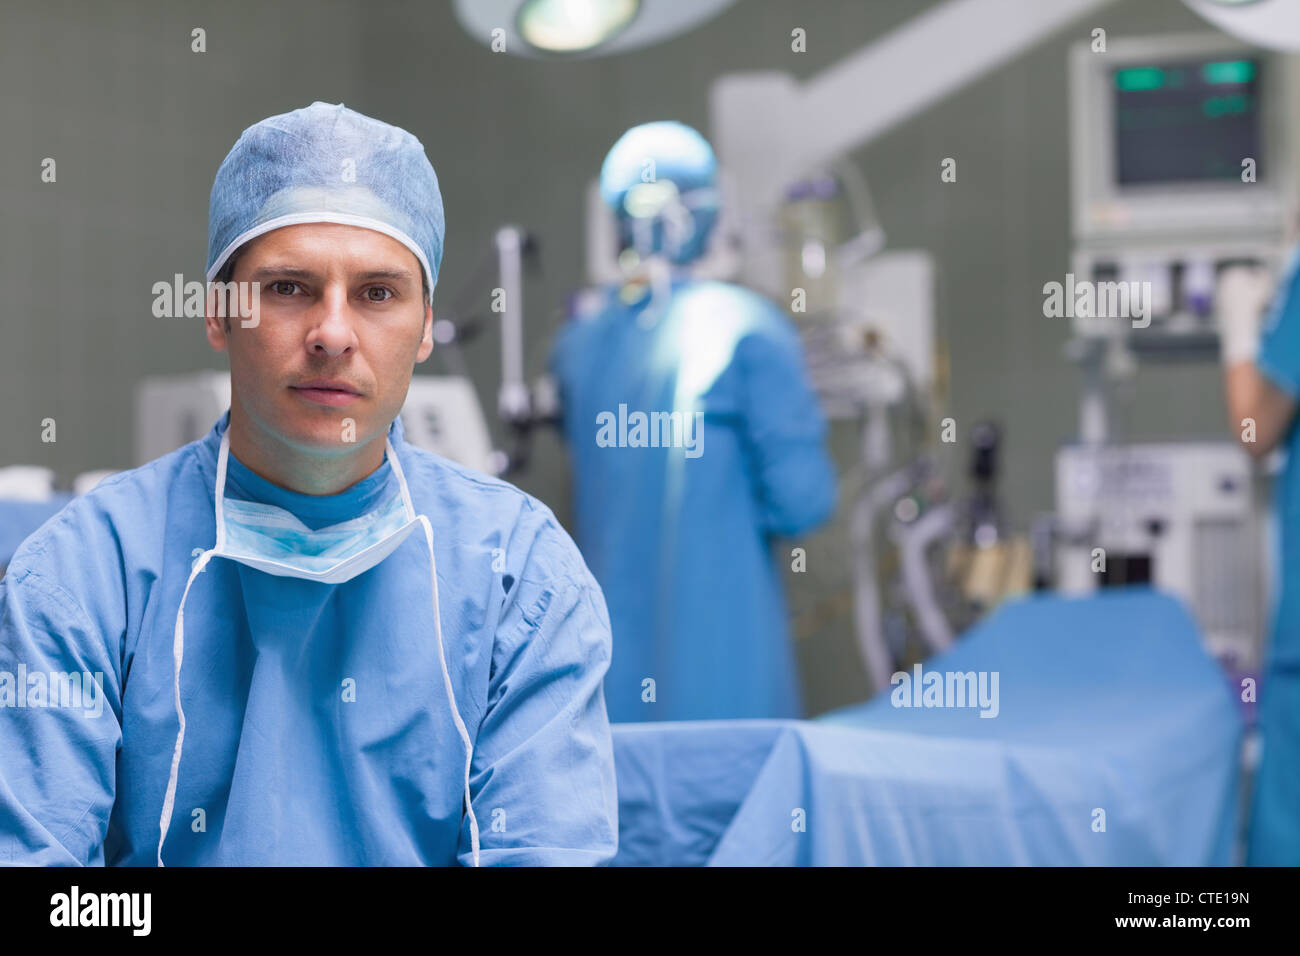 Practitioner next to operating table - Stock Image